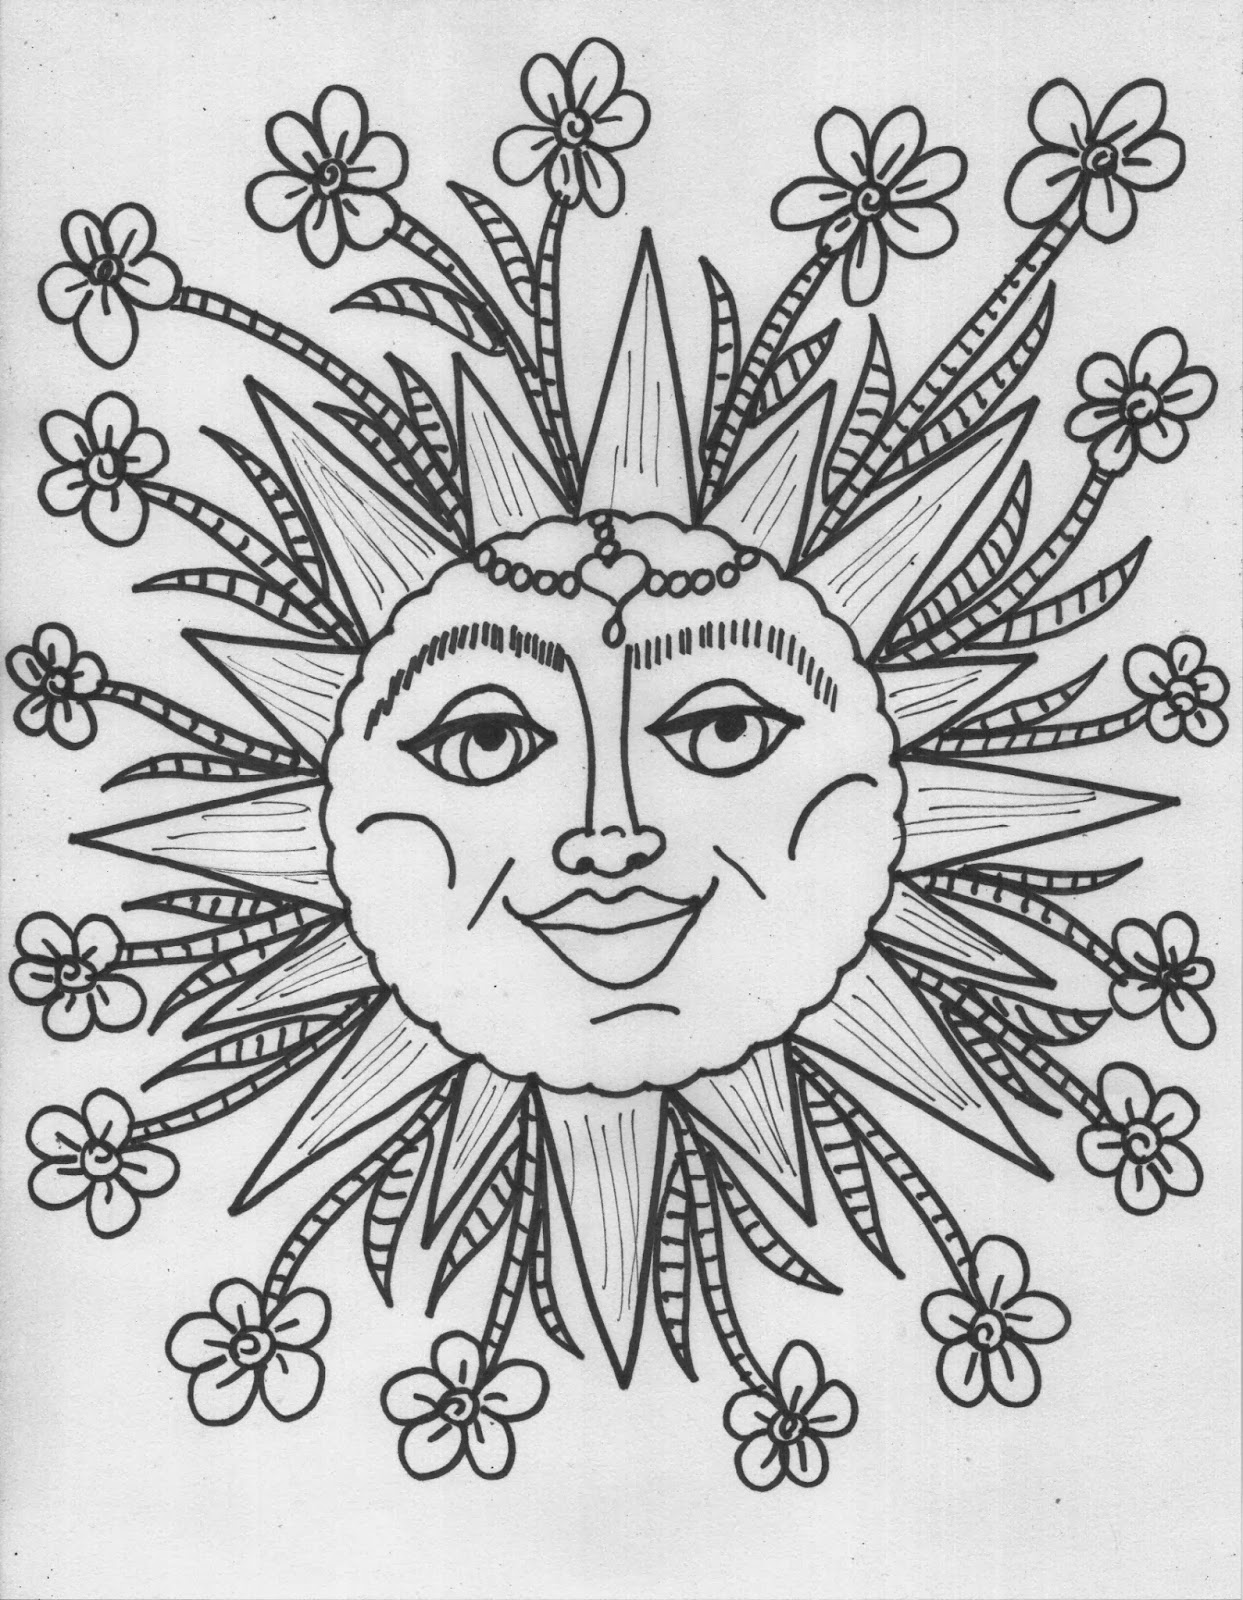 psychedelic hippie coloring pages simonschoolblog com - Psychedelic Hippie Coloring Pages